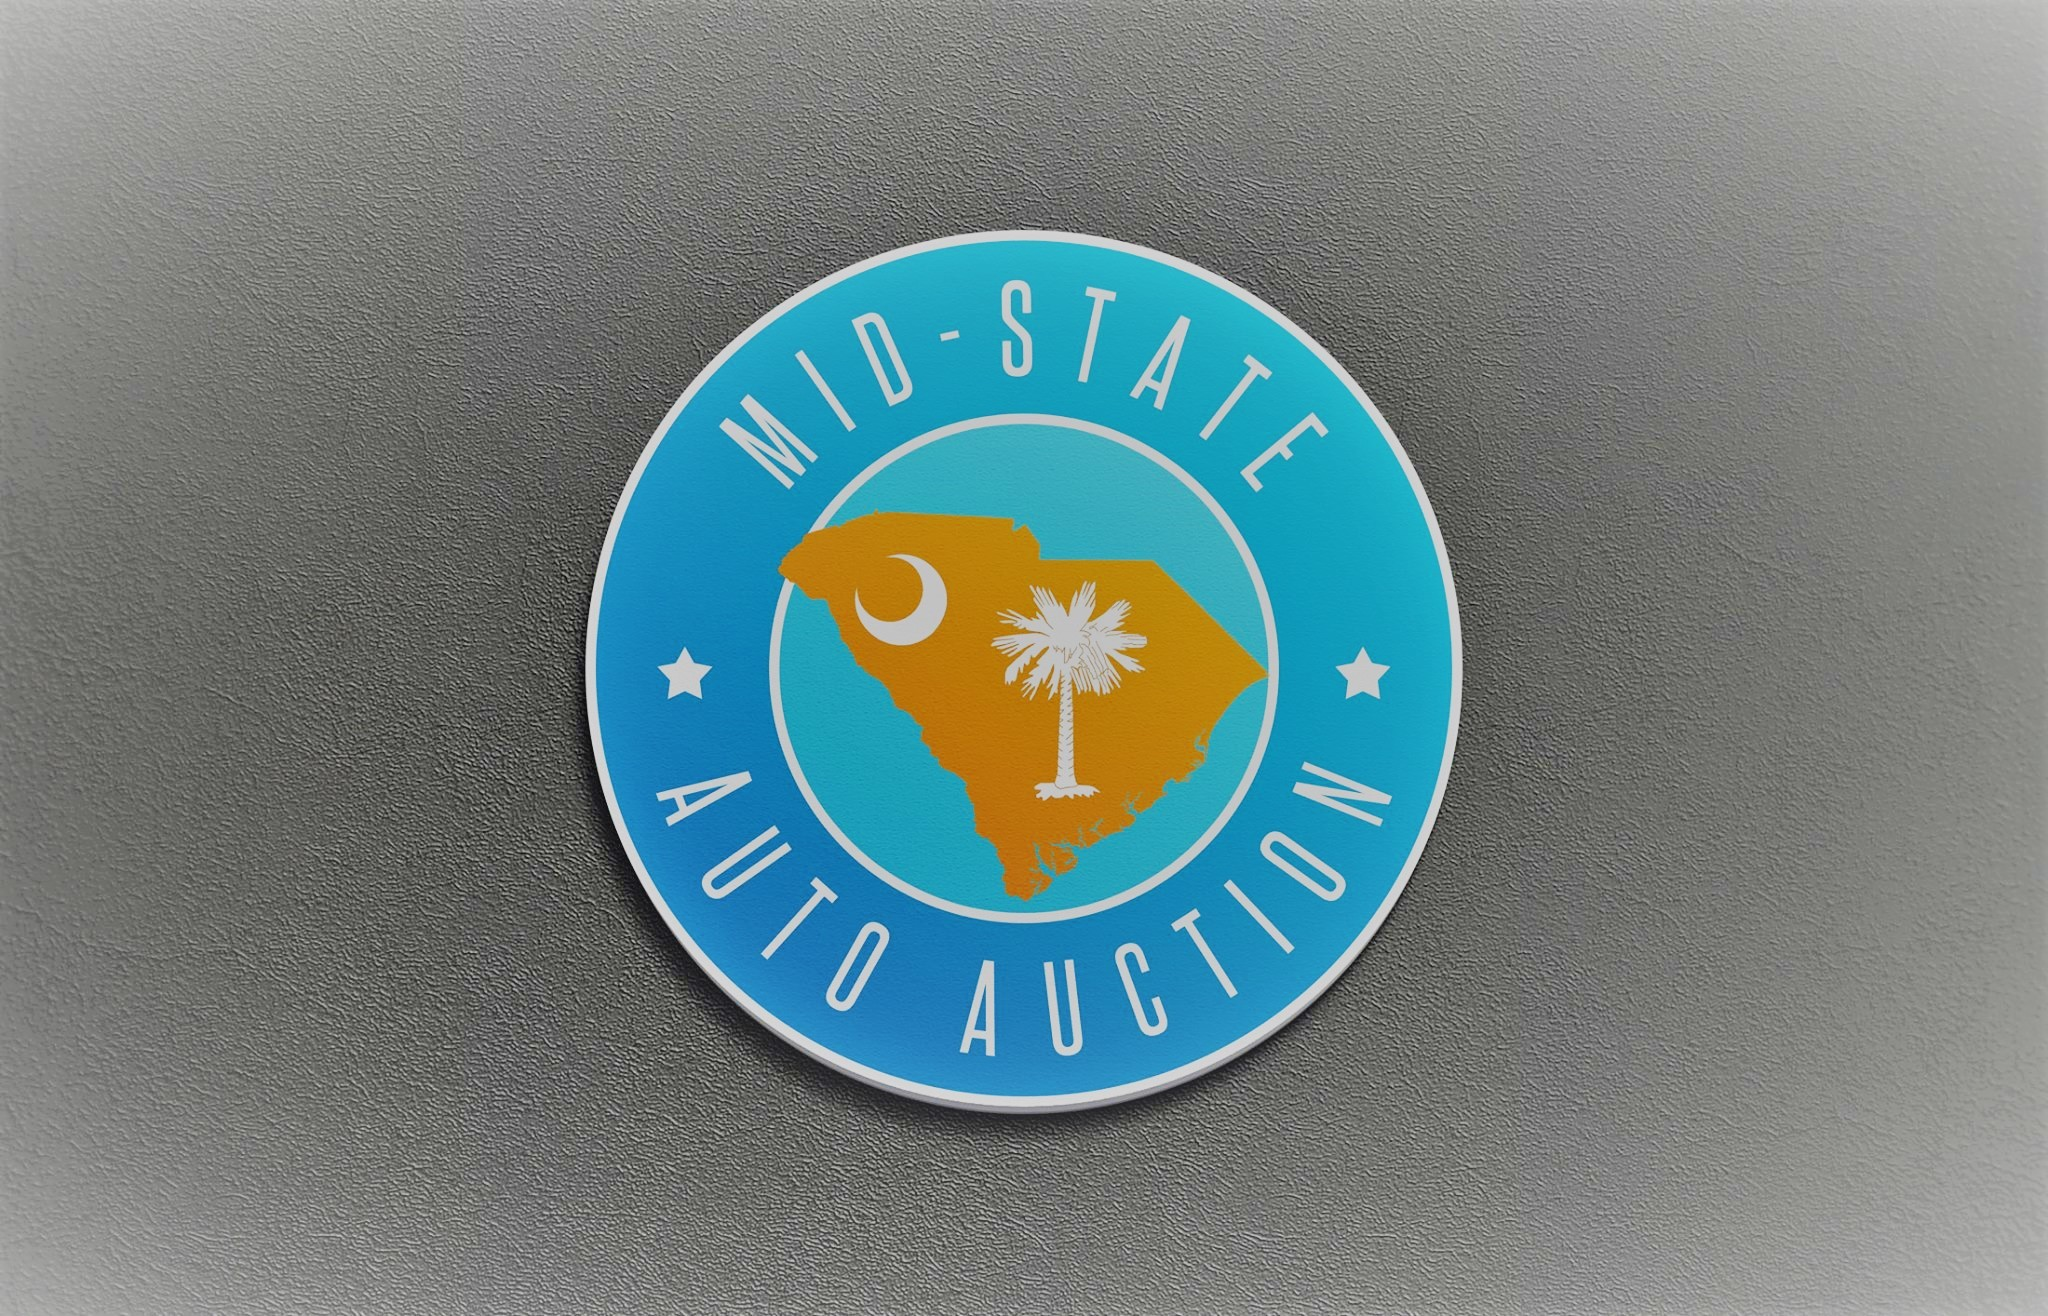 Mid-State Auto Auction logo